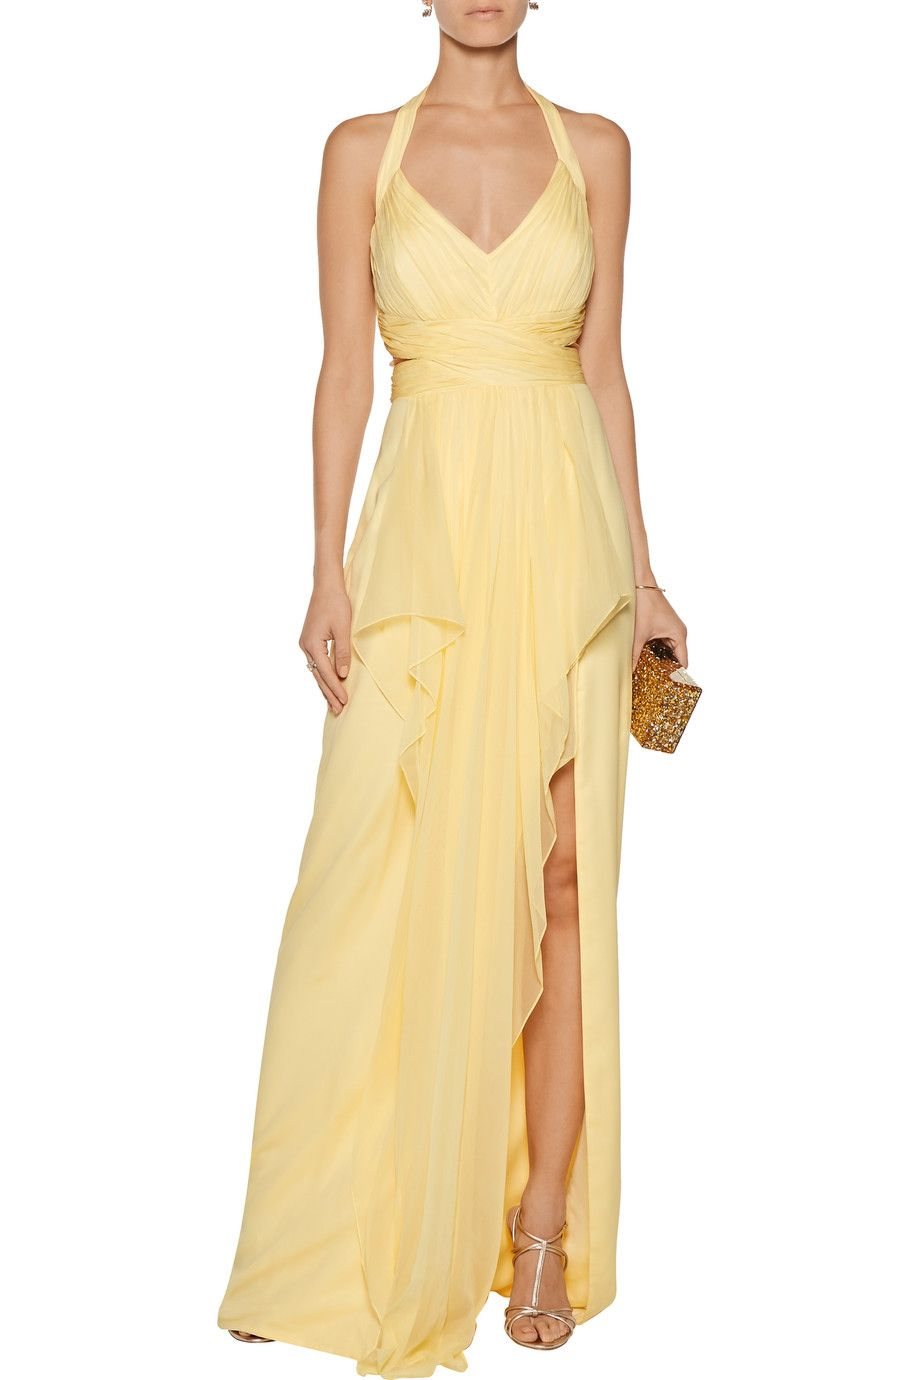 Shop on sale marchesa notte draped silk chiffon halterneck for Marchesa wedding dress sale